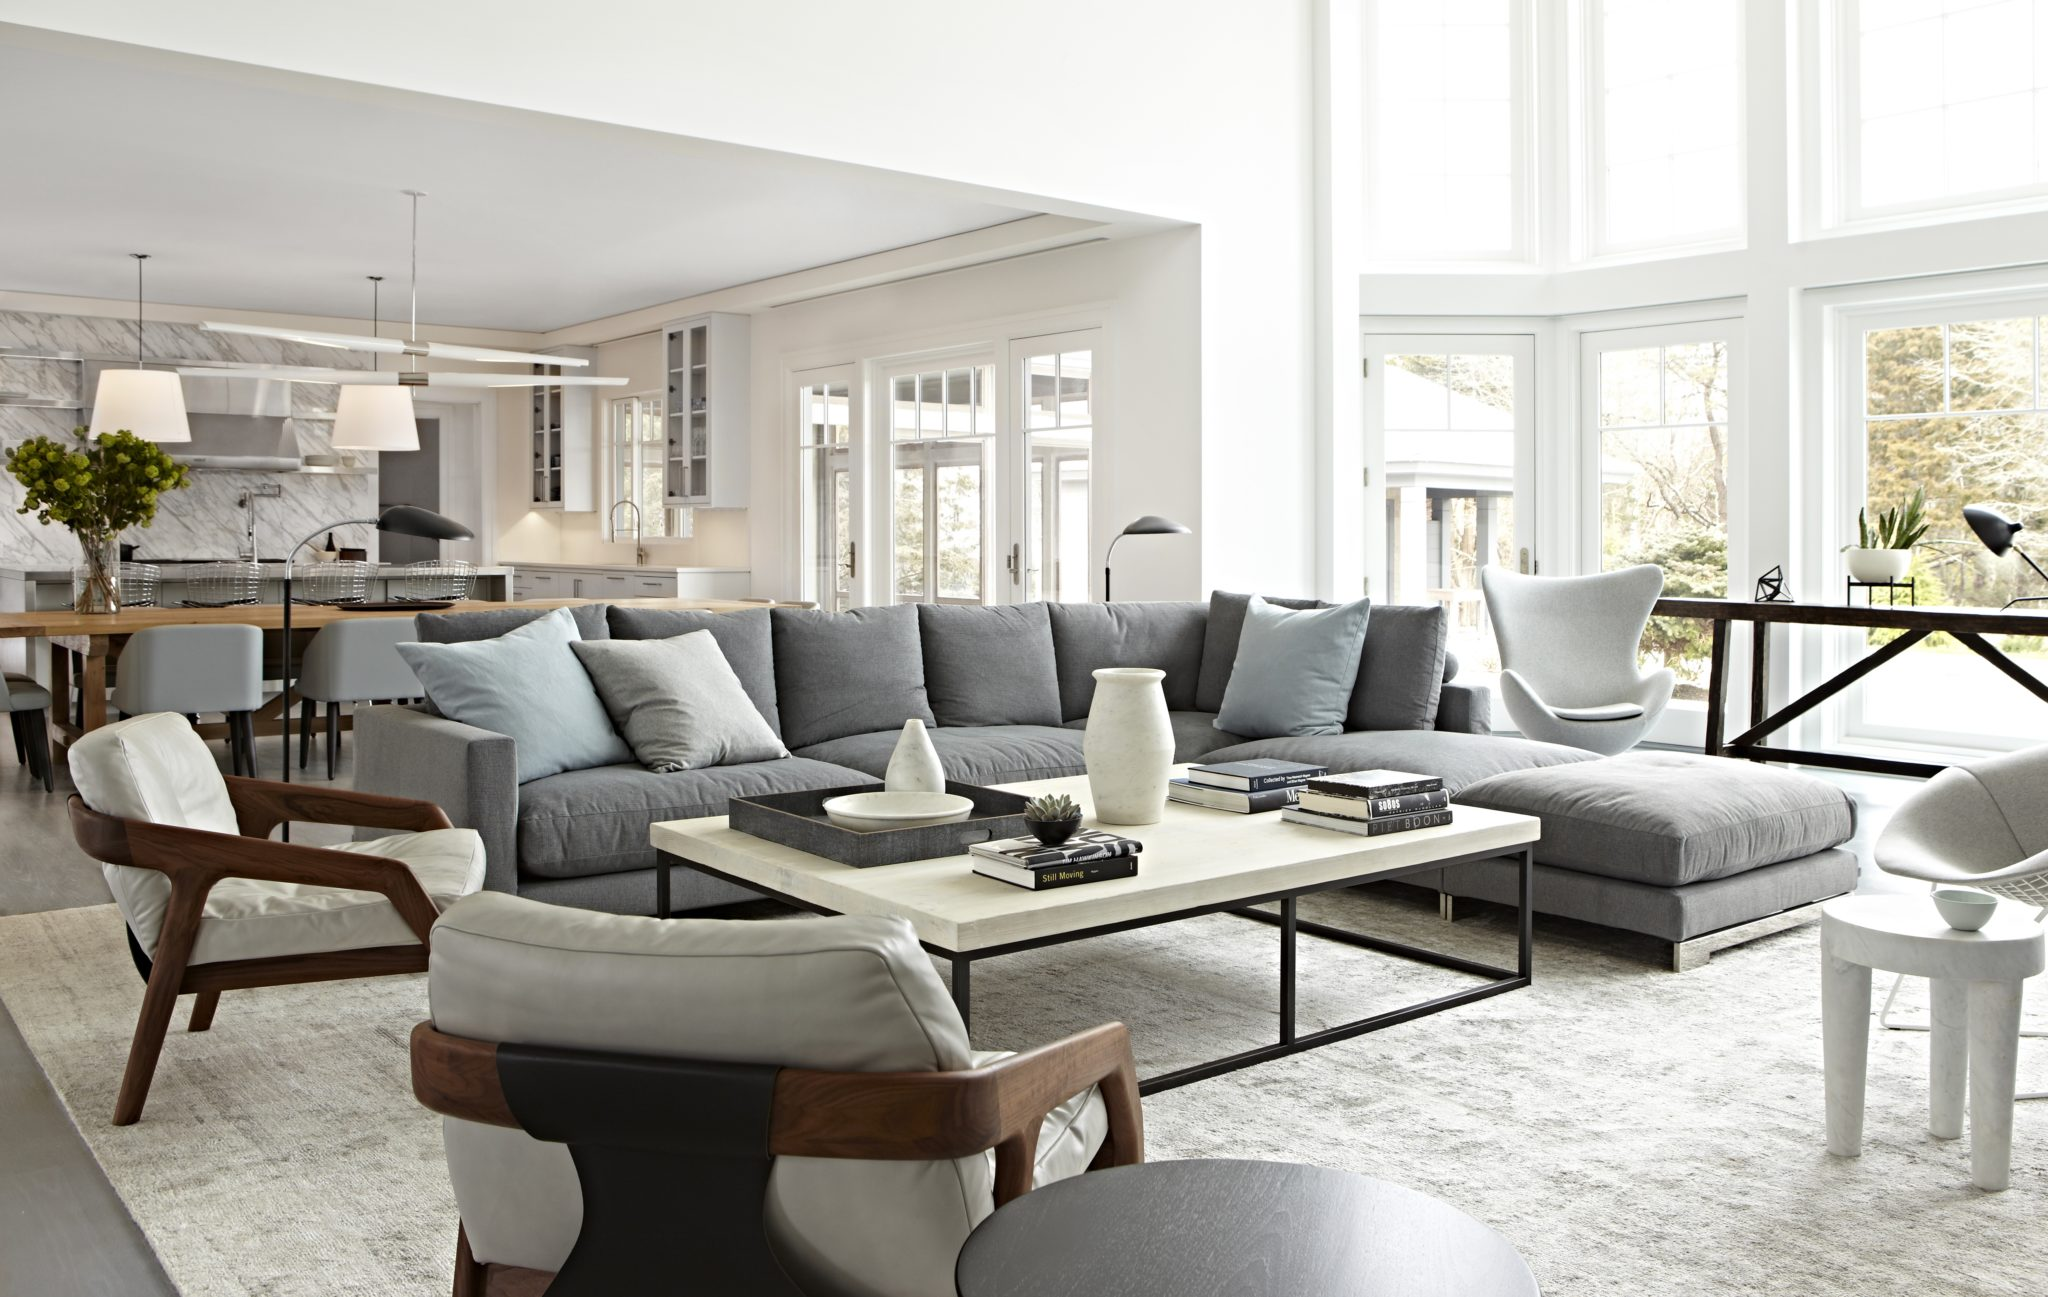 Quogue, Hamptons large living room with sectional seating. by Tina Ramchandani Creative